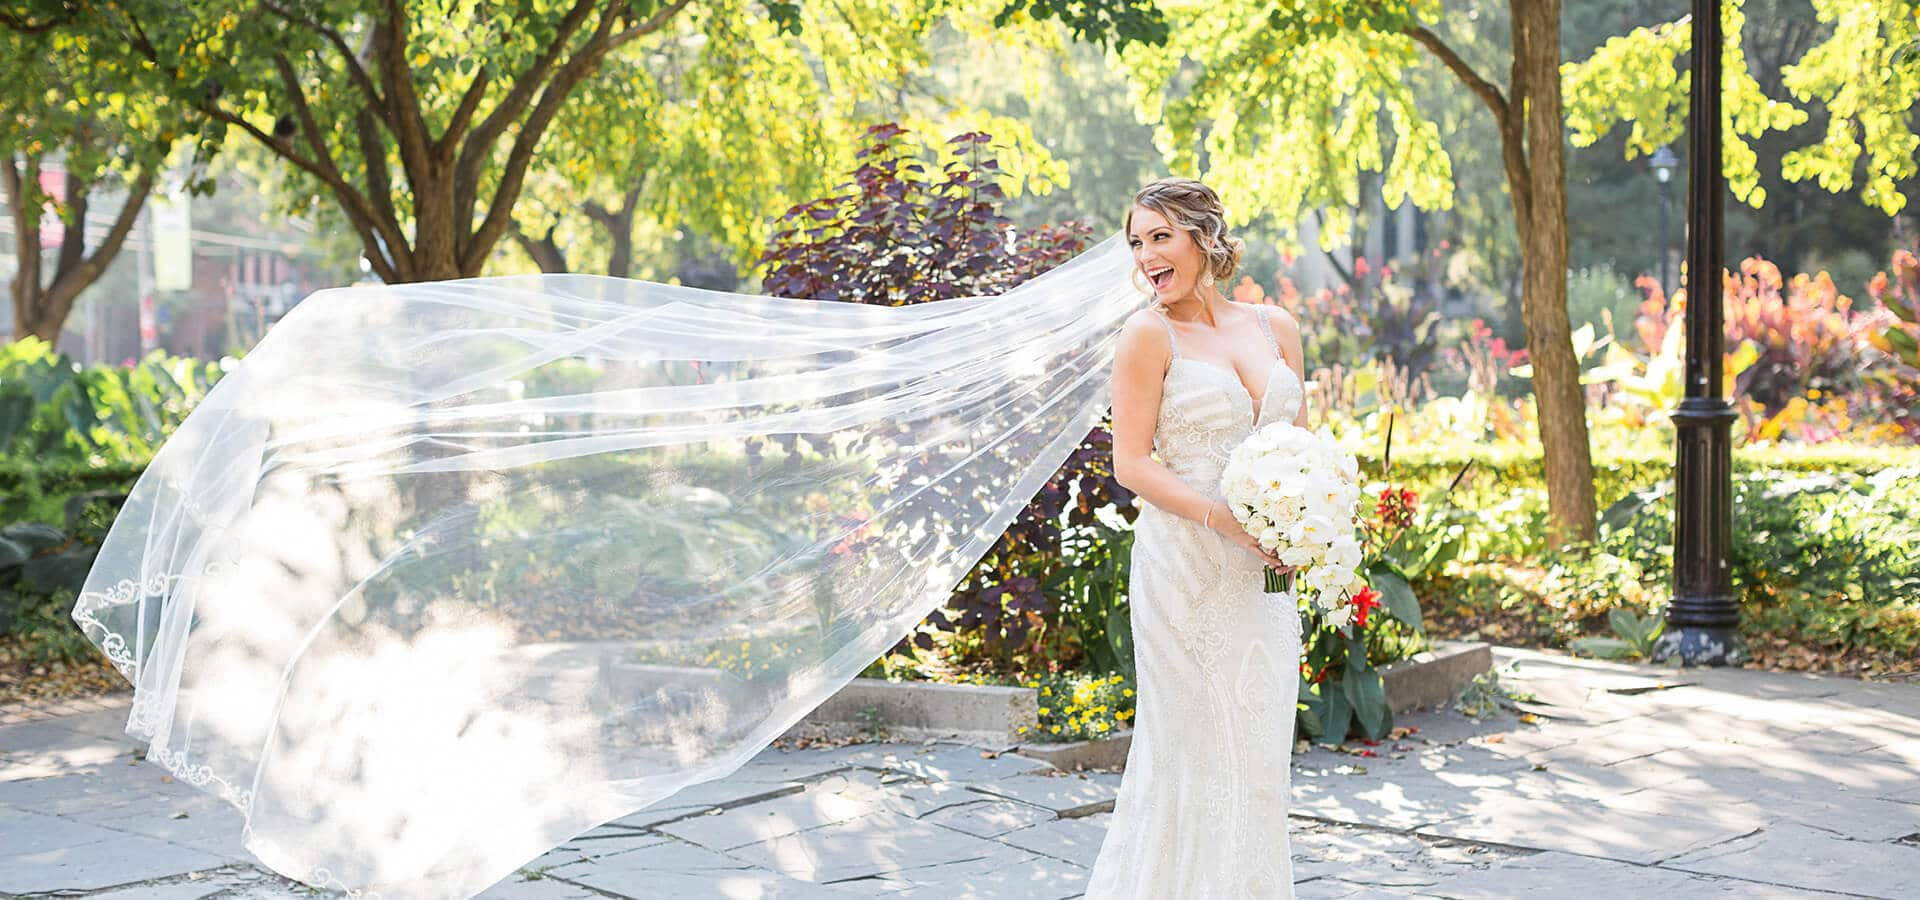 Hero image for The Dos and Don'ts of Wedding Dress Shopping